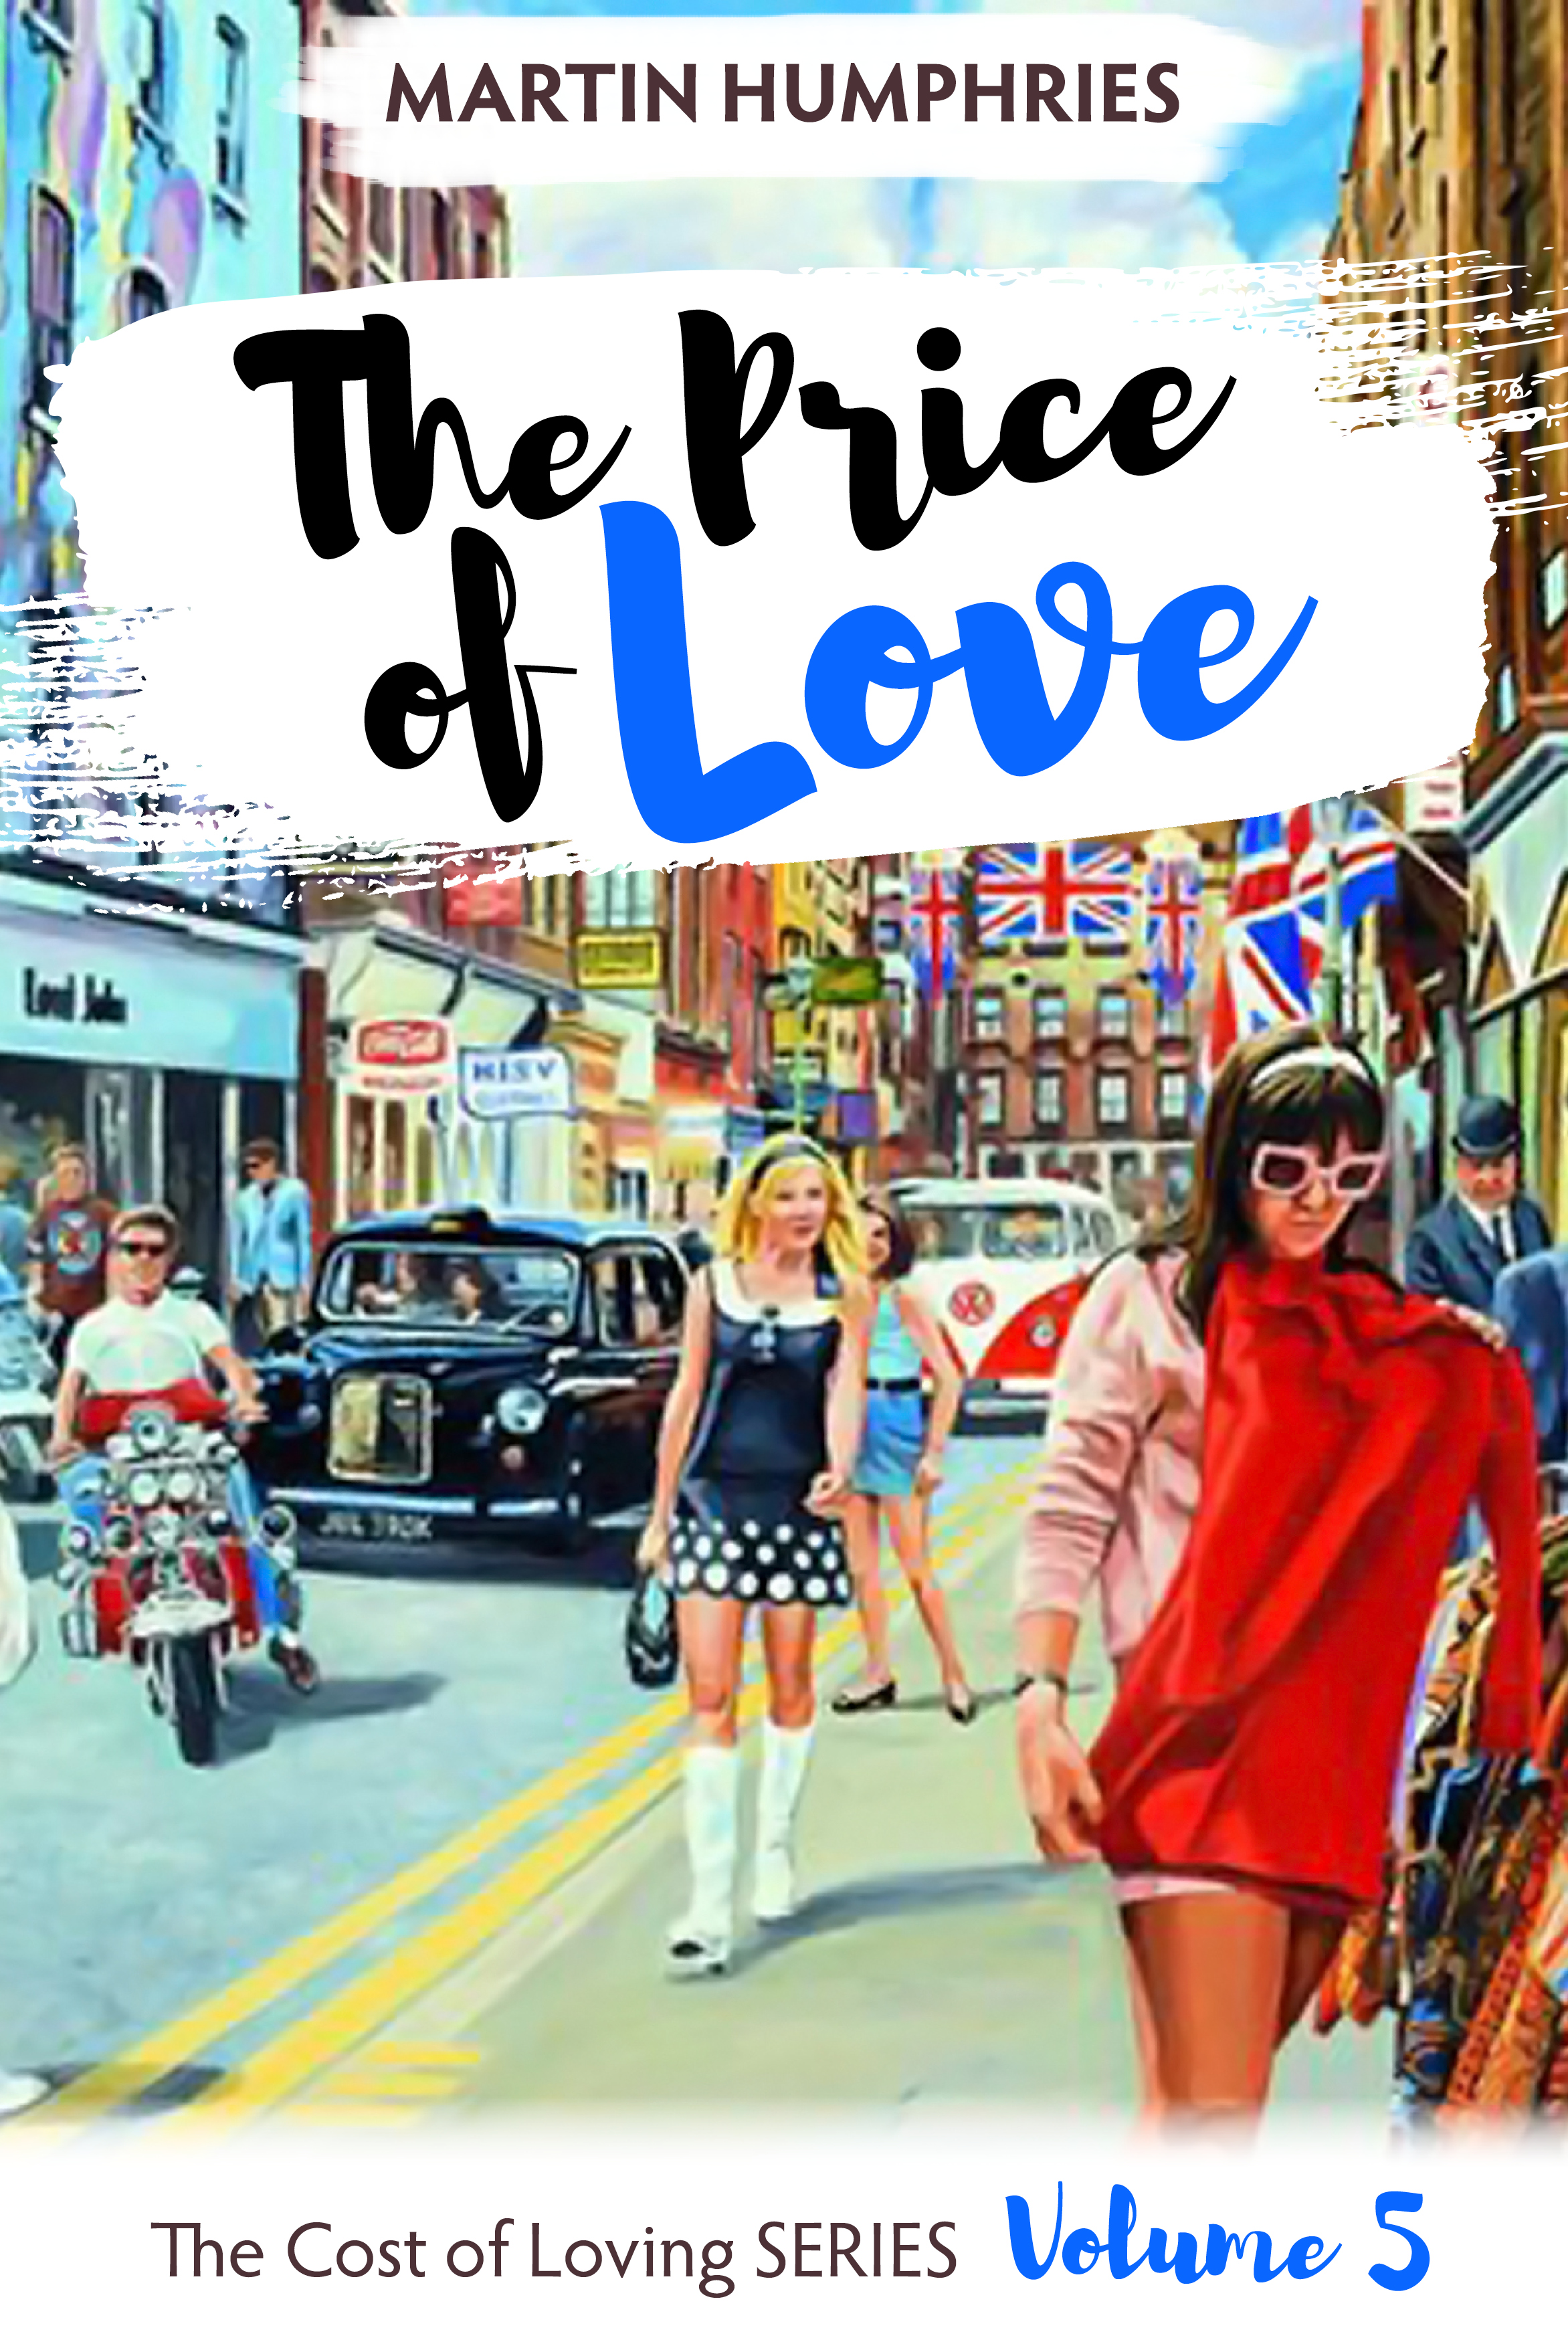 PRICE OF LOVE-Vol5.jpg